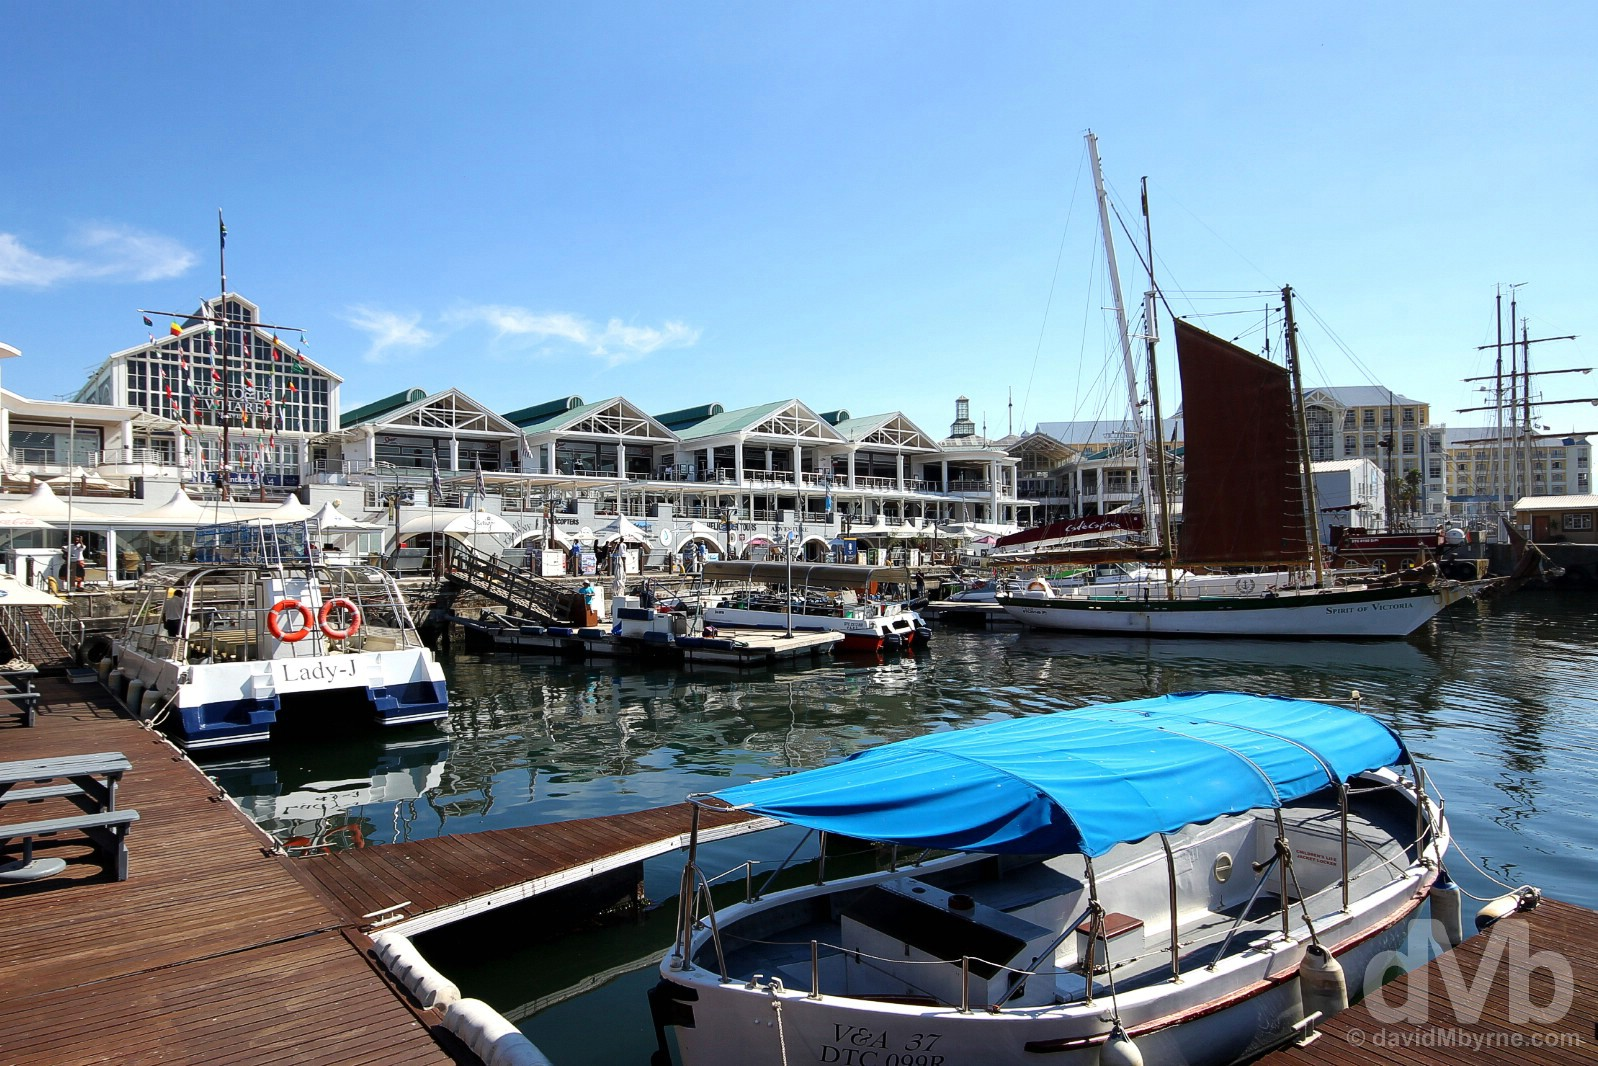 The V&A Waterfront, Cape Town, Western Cape, South Africa. February 22, 2017.